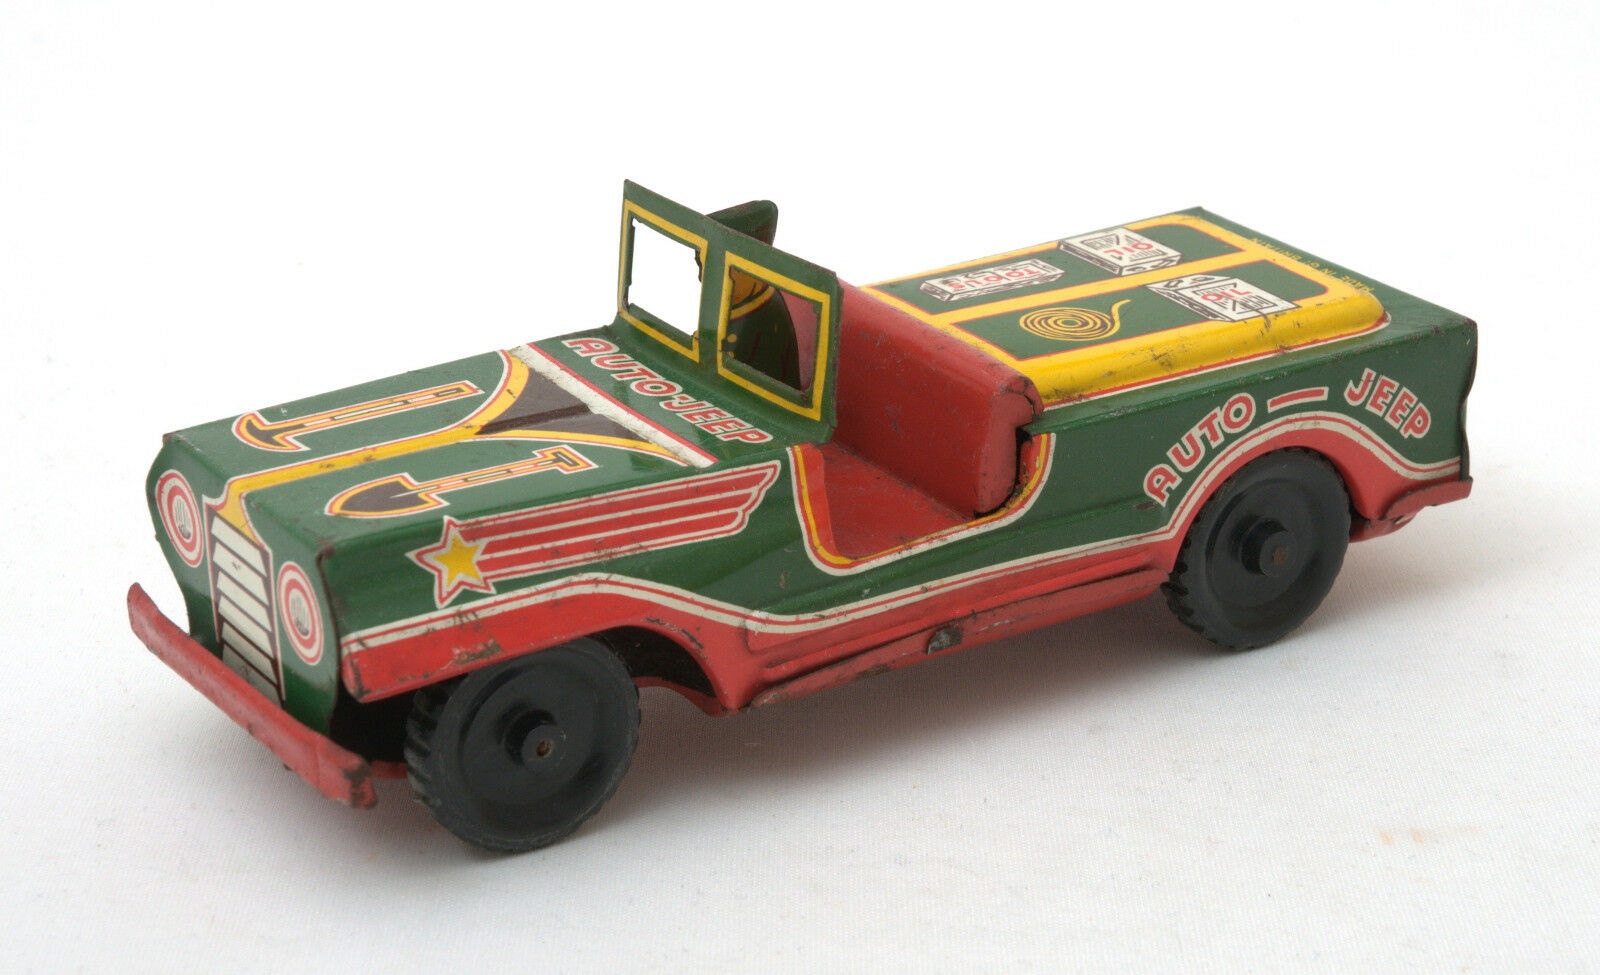 Wells Brimtoy Tinplate Friction Drive Auto-Jeep